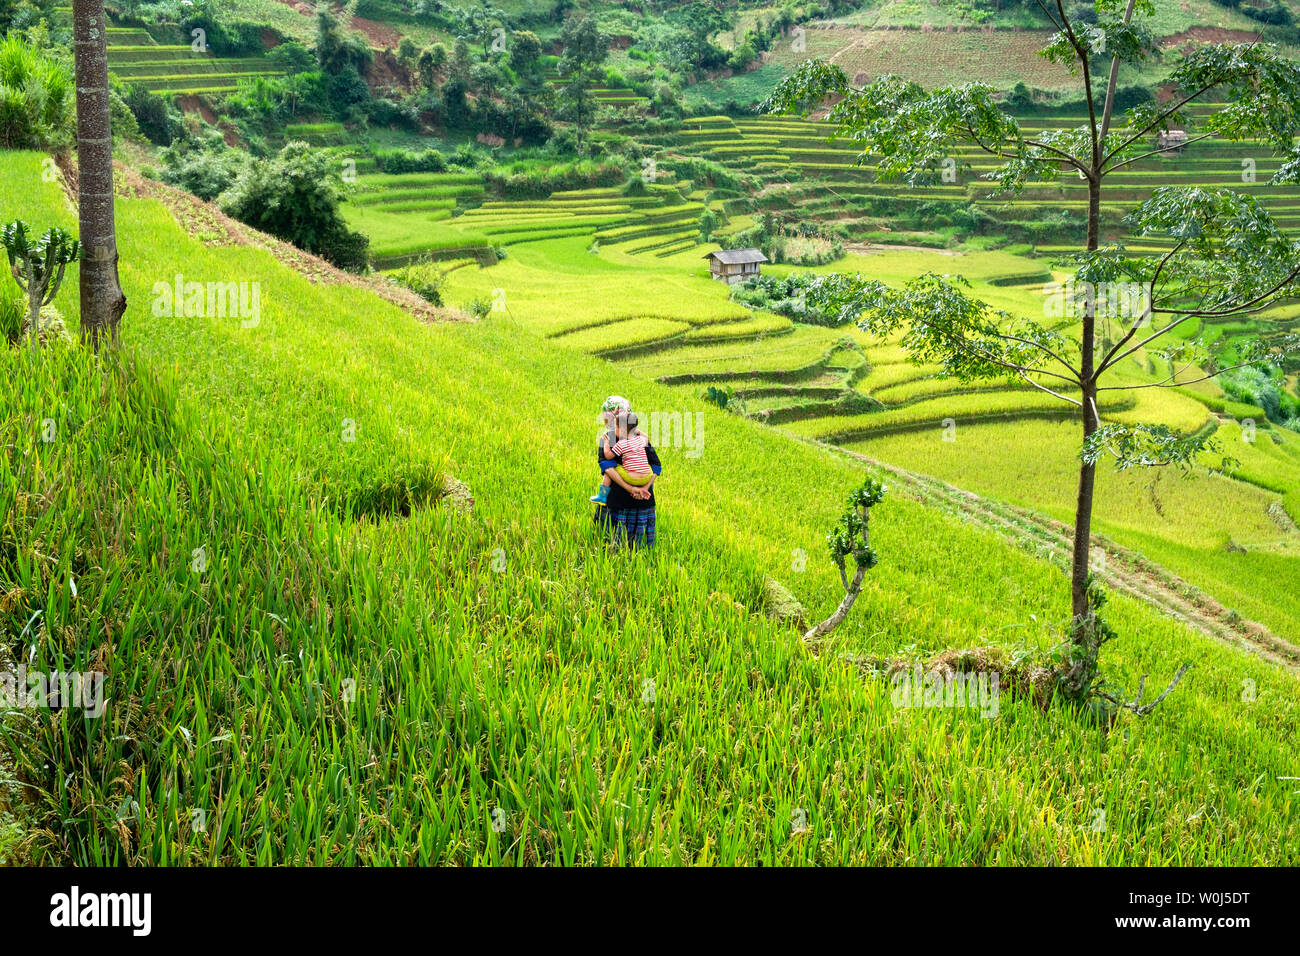 Mu Cang Chai, Vietnam - Sep 07 2017 : Grandmother carrying grandson walking in green rice field terraced on tribe valley - Stock Image